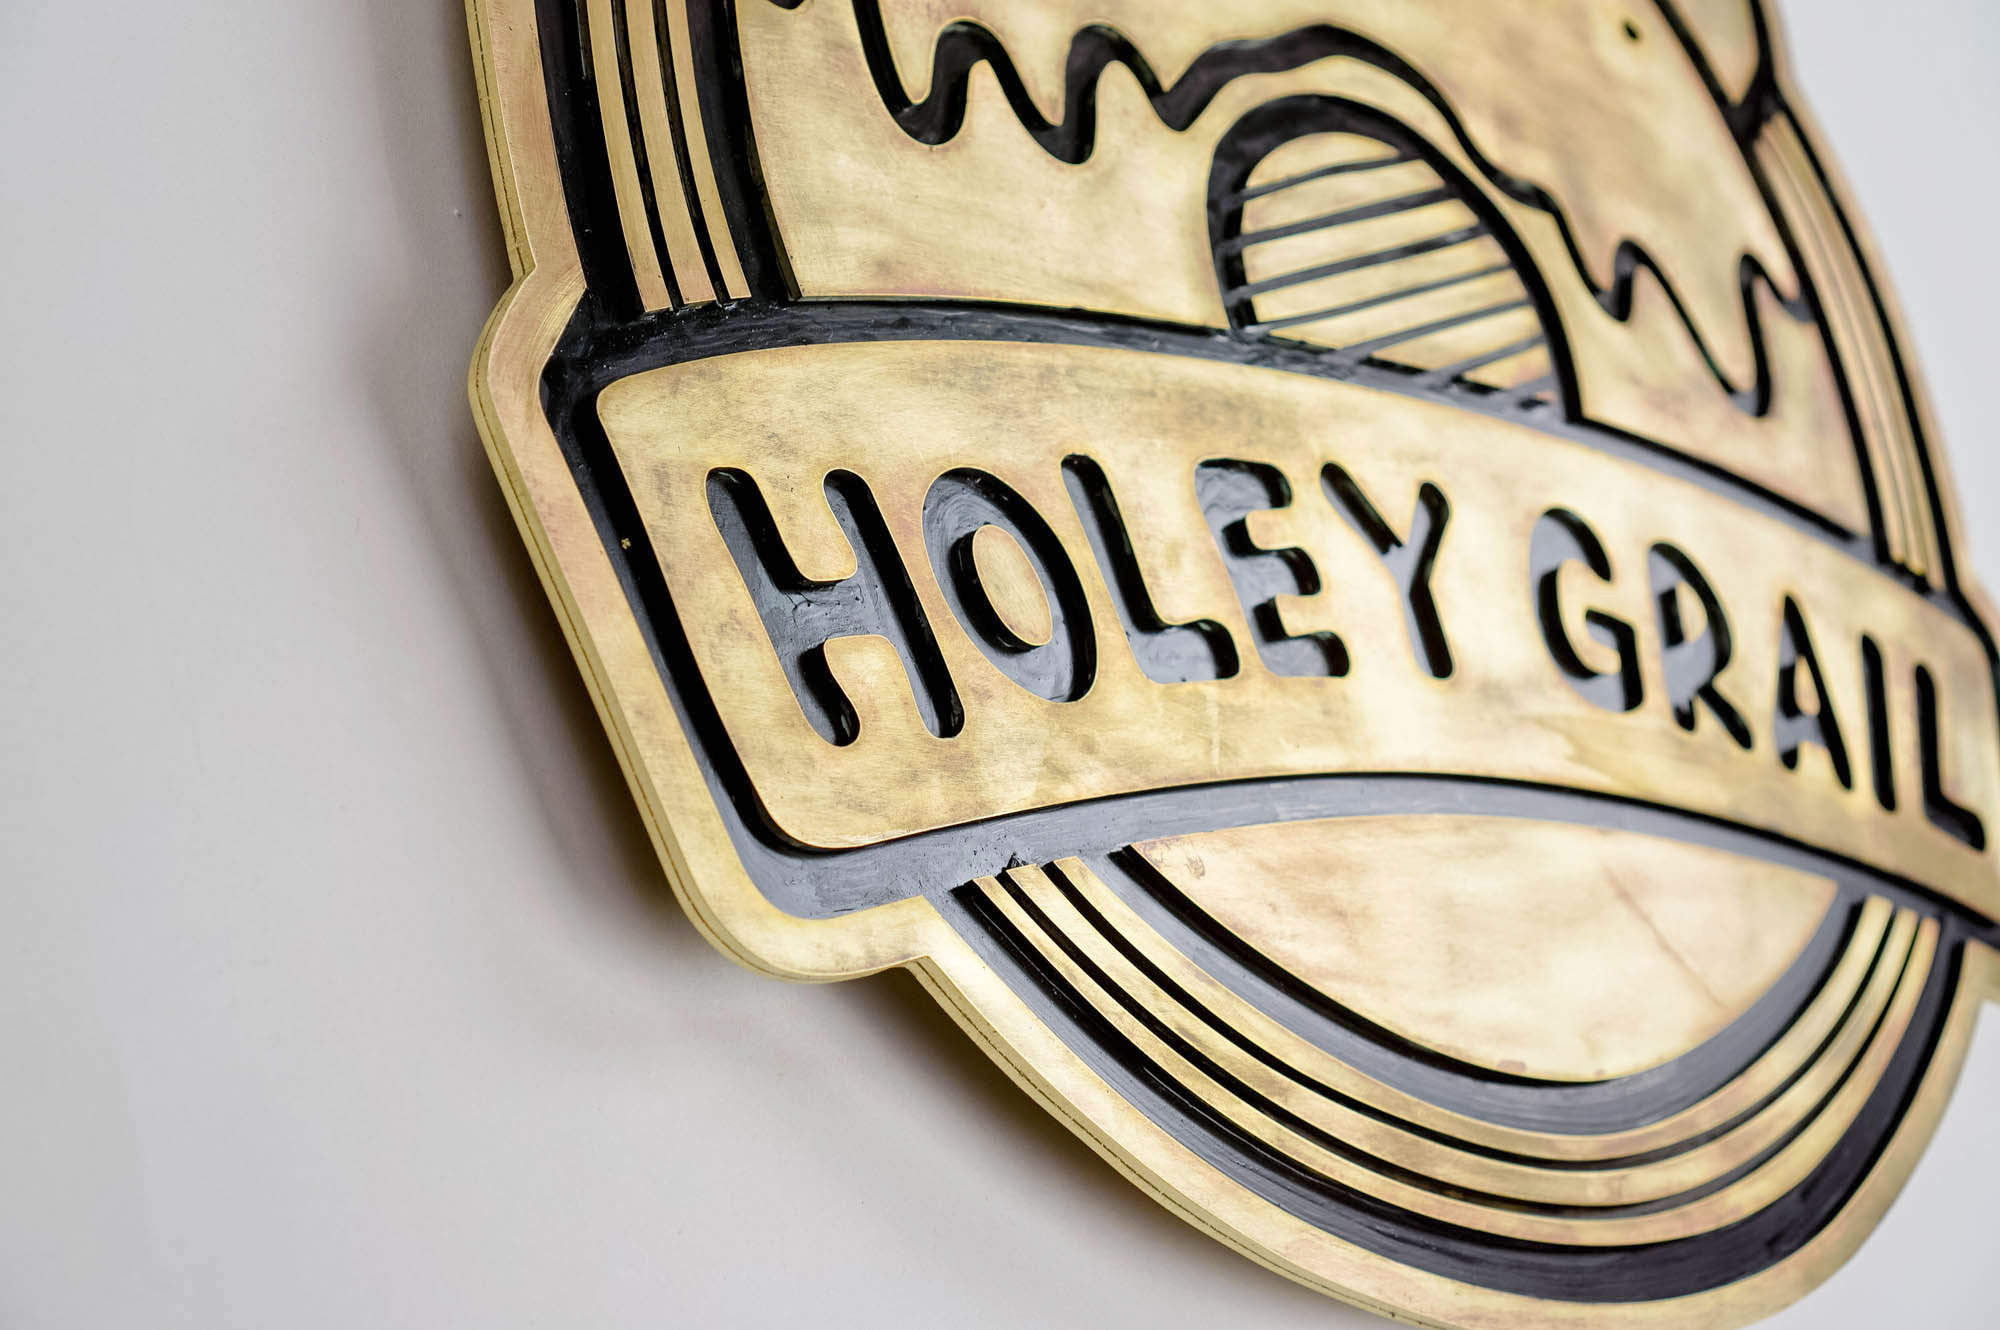 Patinated, retro brass sign for Holey Grail, a donut shop based in Hawaii.